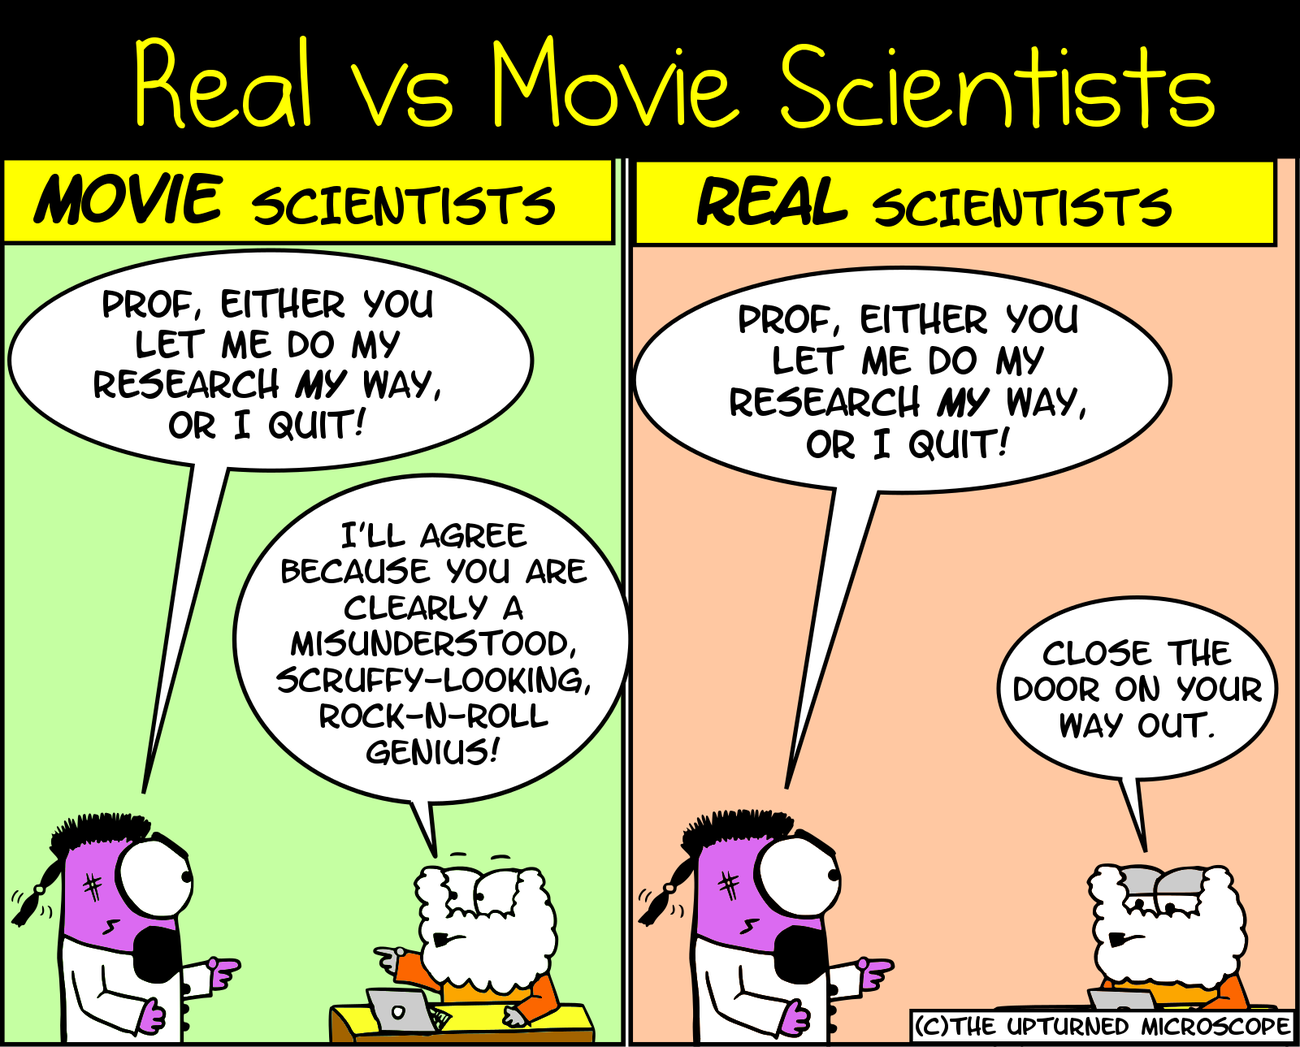 Movie Vs Real Scientists 11